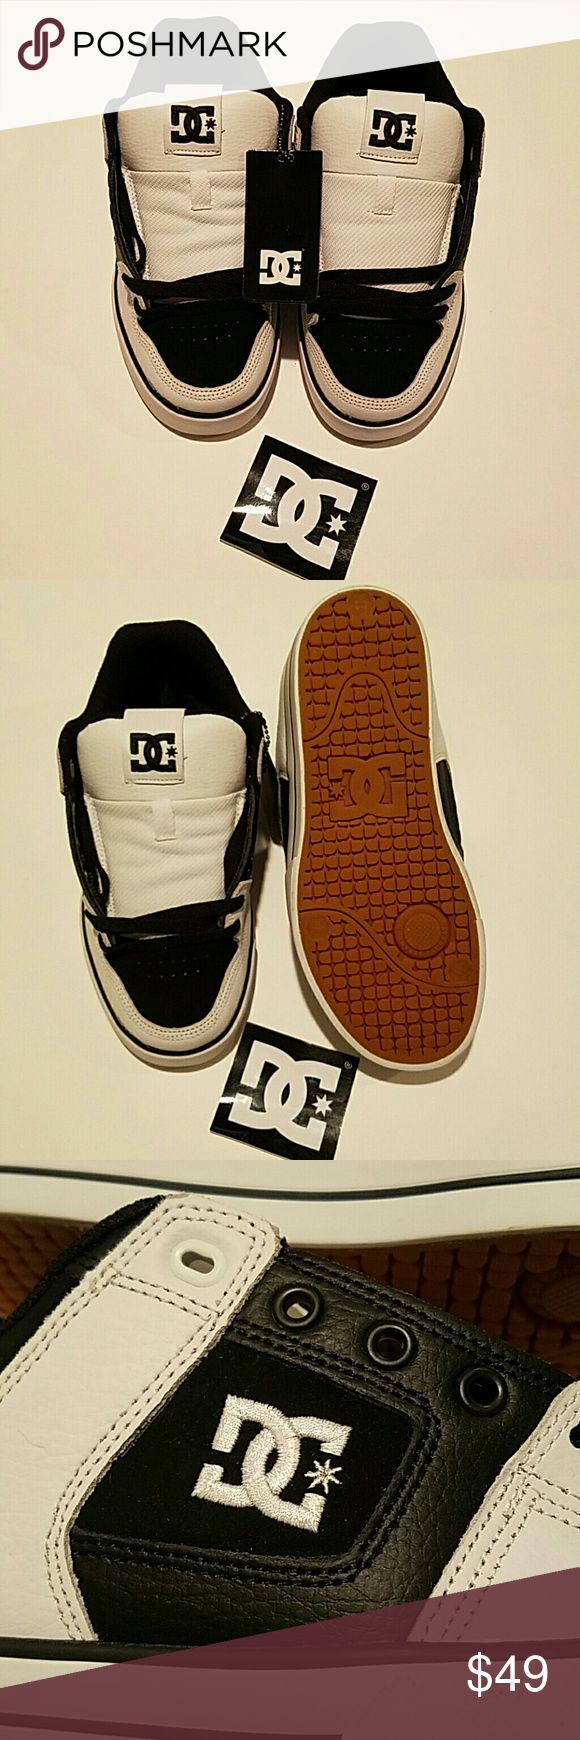 DC SKATE SHOES Men's size 5. NWT Never worn. Don't have original box, just tags. DC SHOES Shoes Sneakers